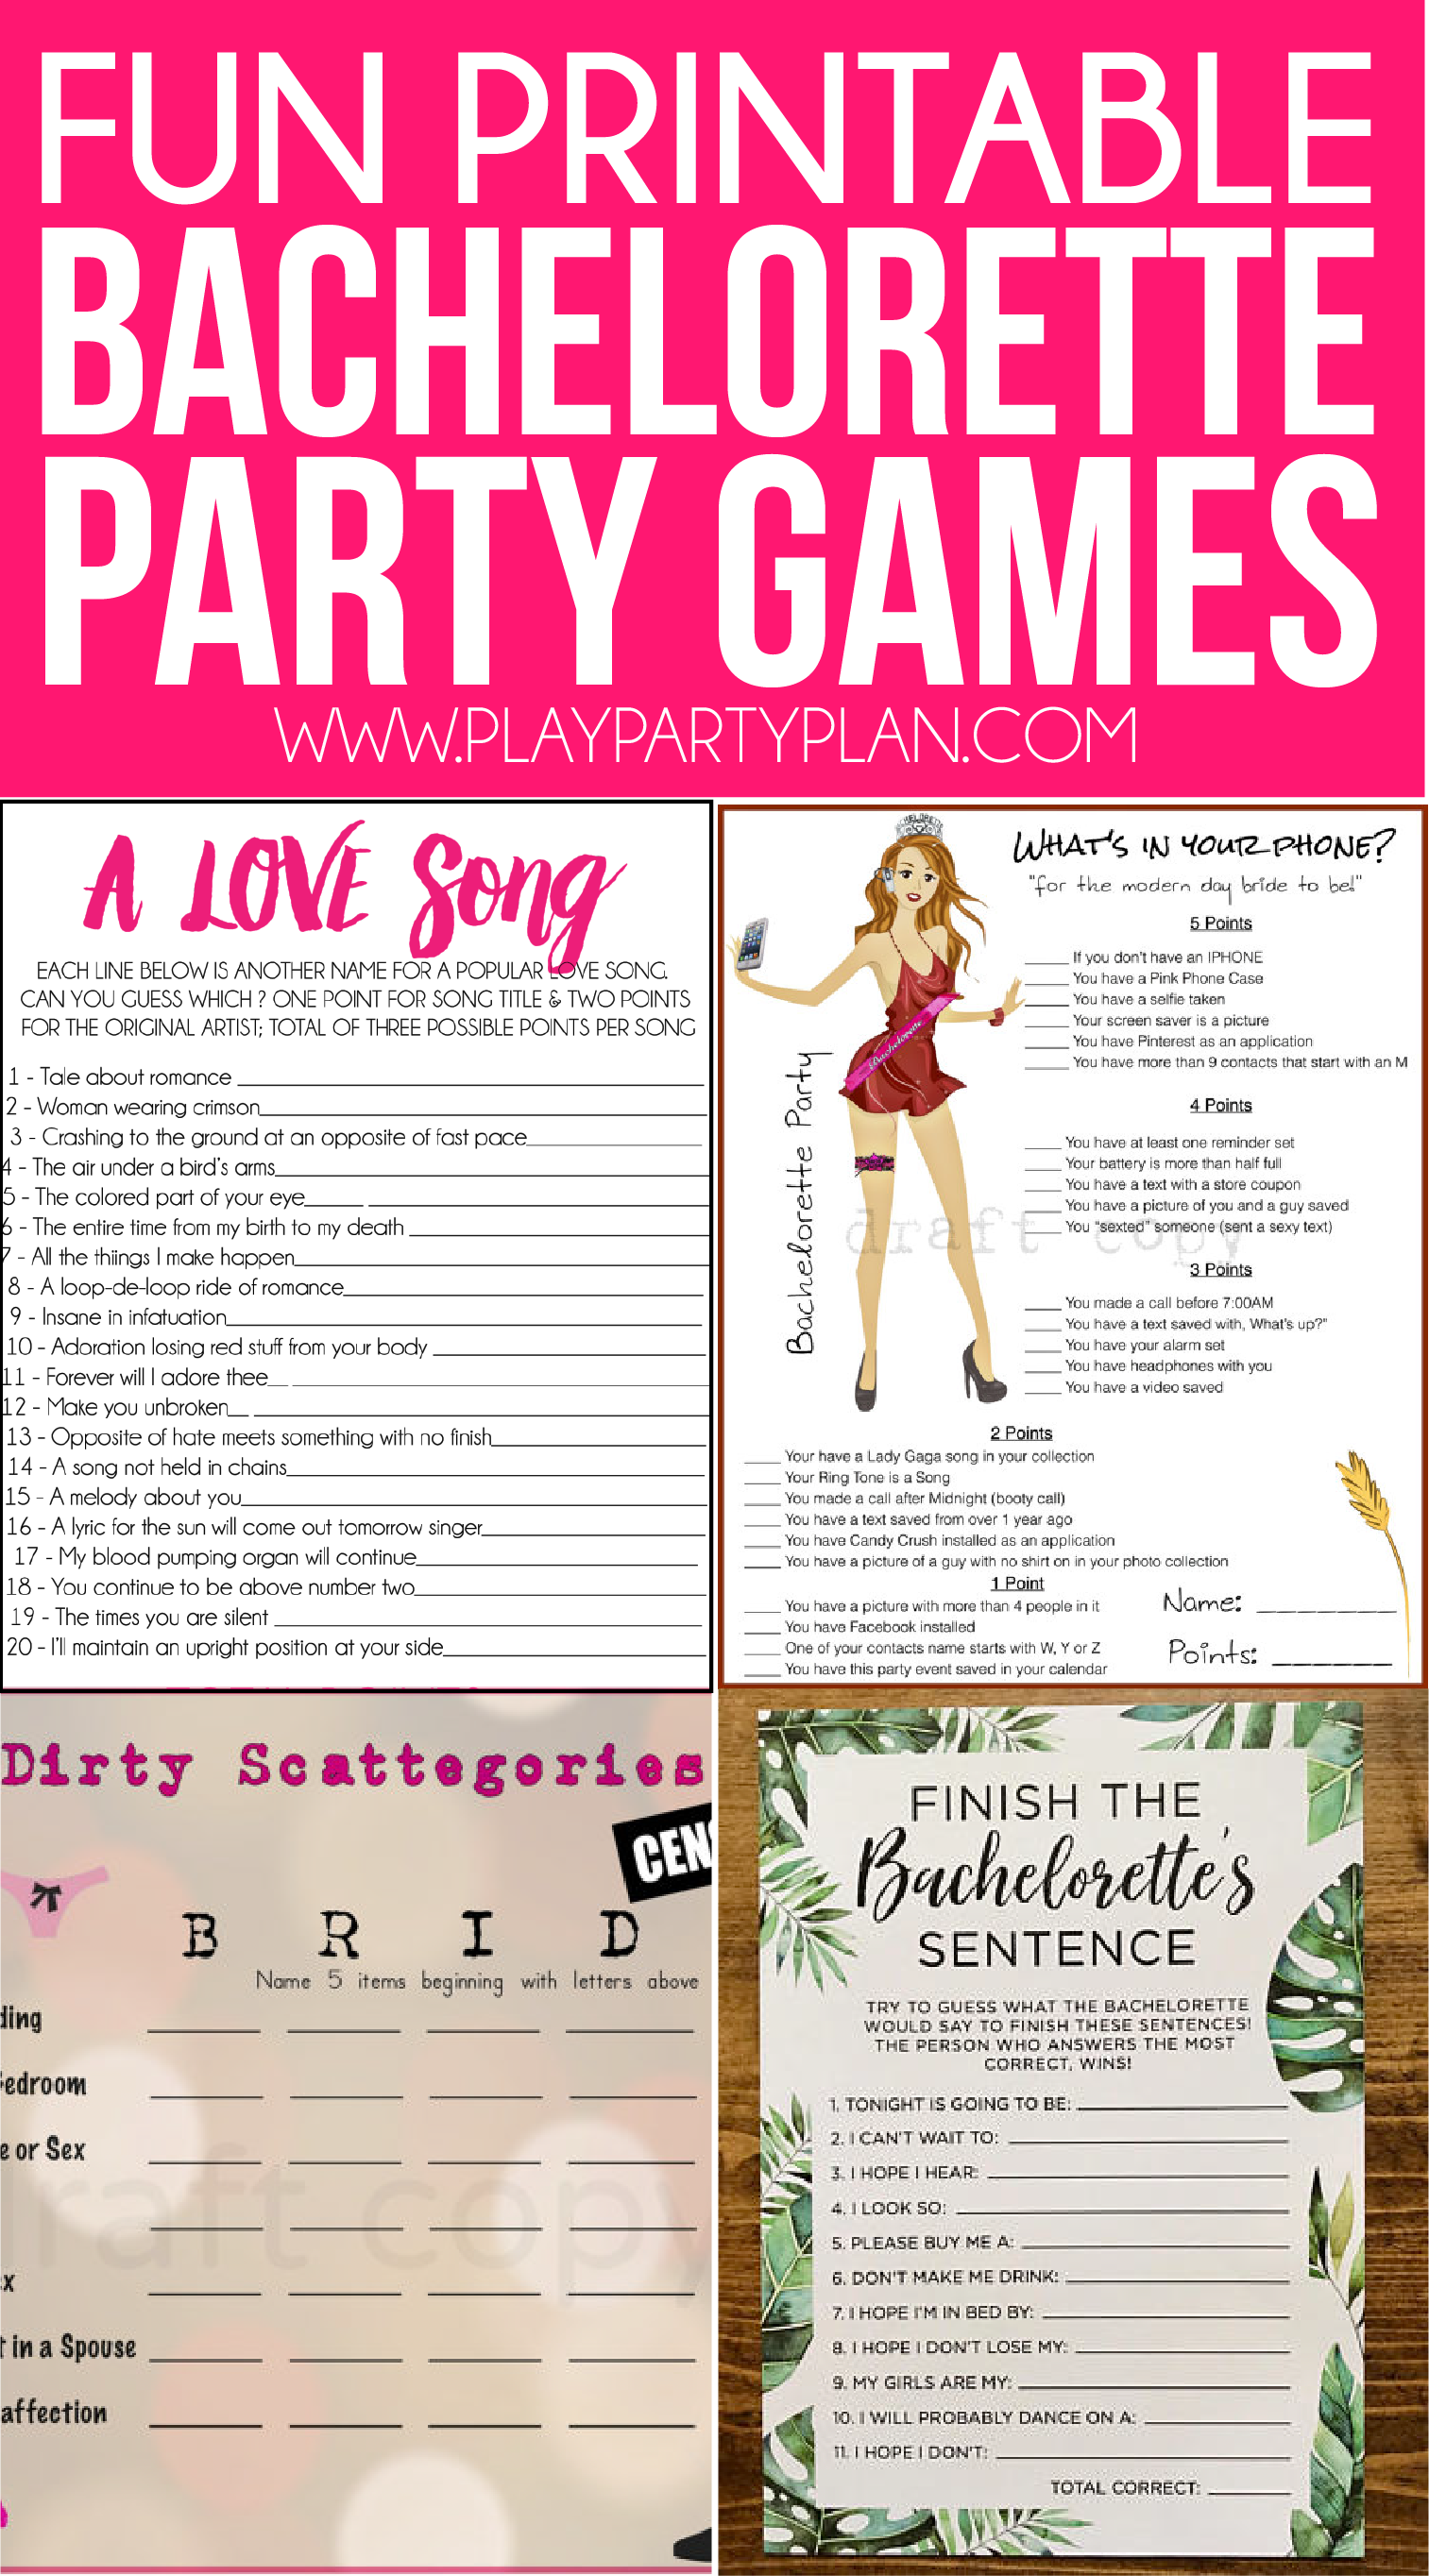 Slobbery image for bachelorette party games printable